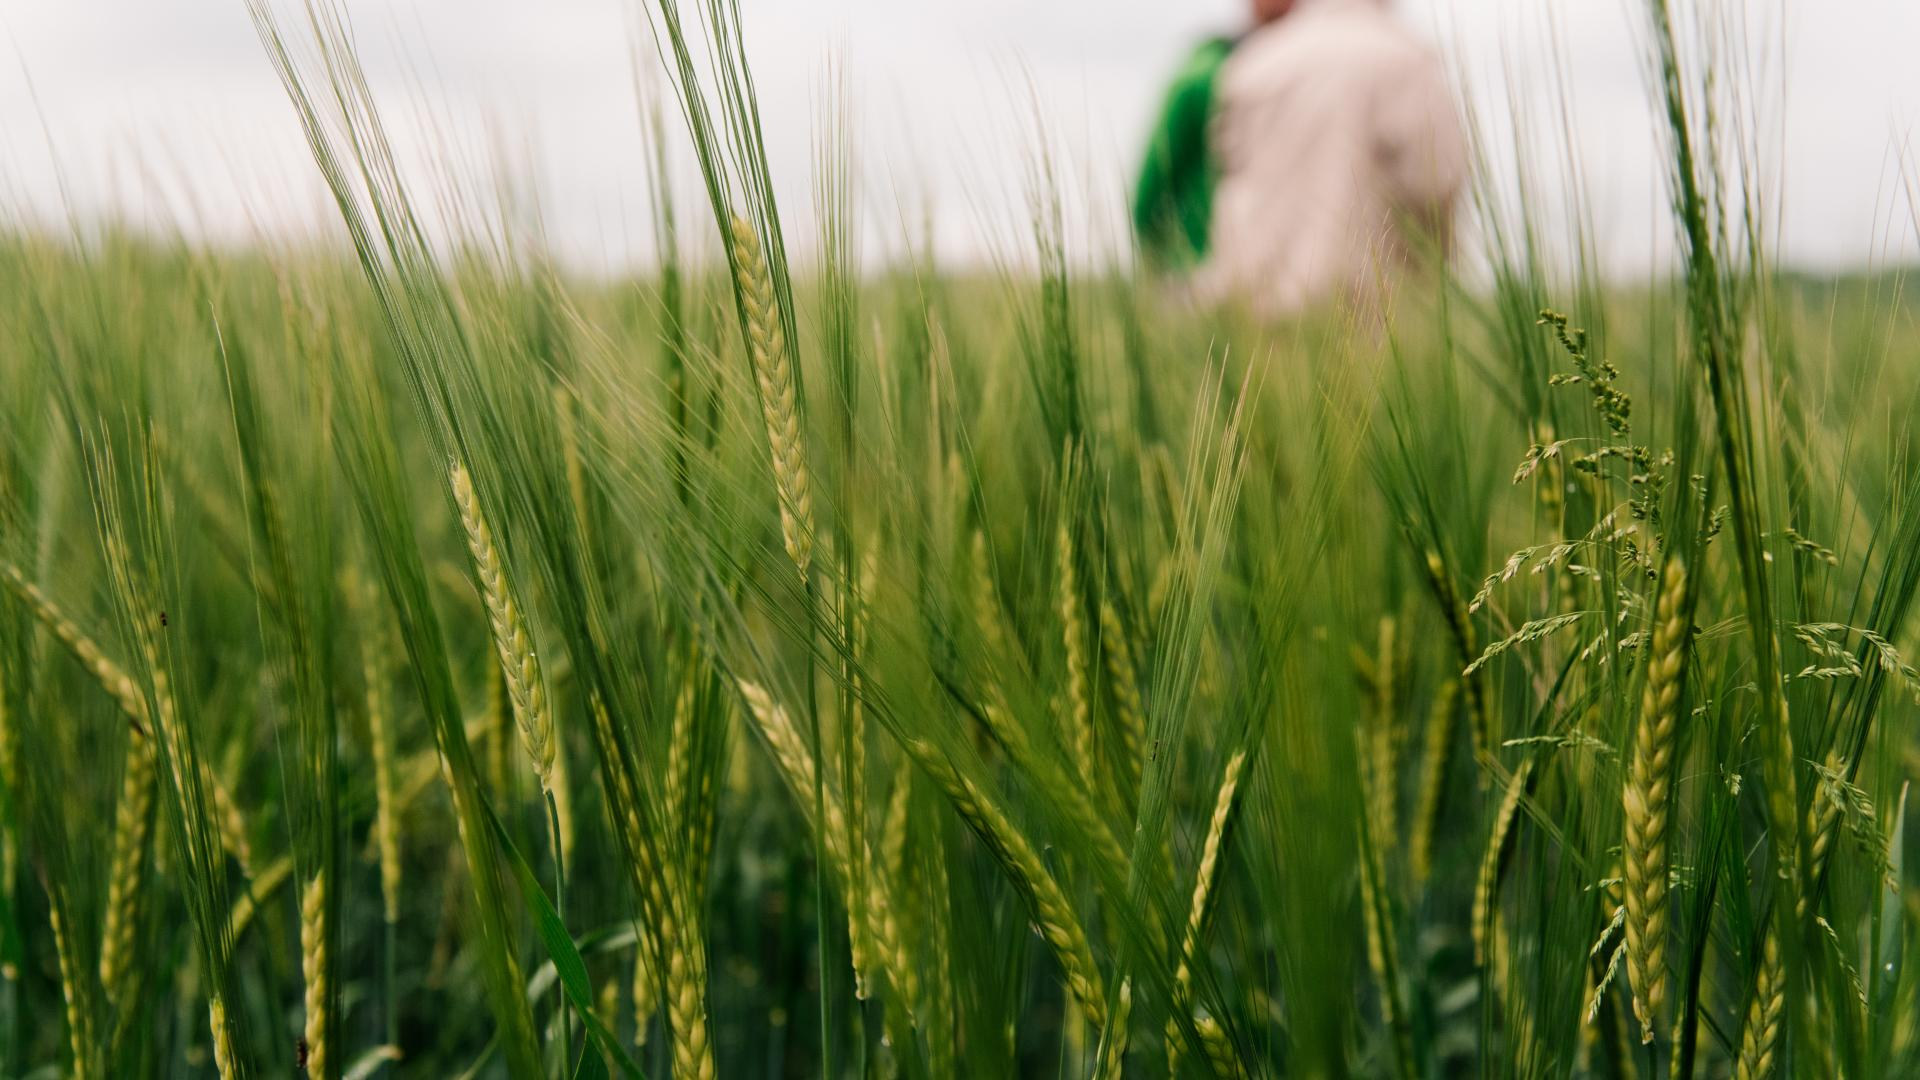 a close up of barley growing in a field with two men in the background